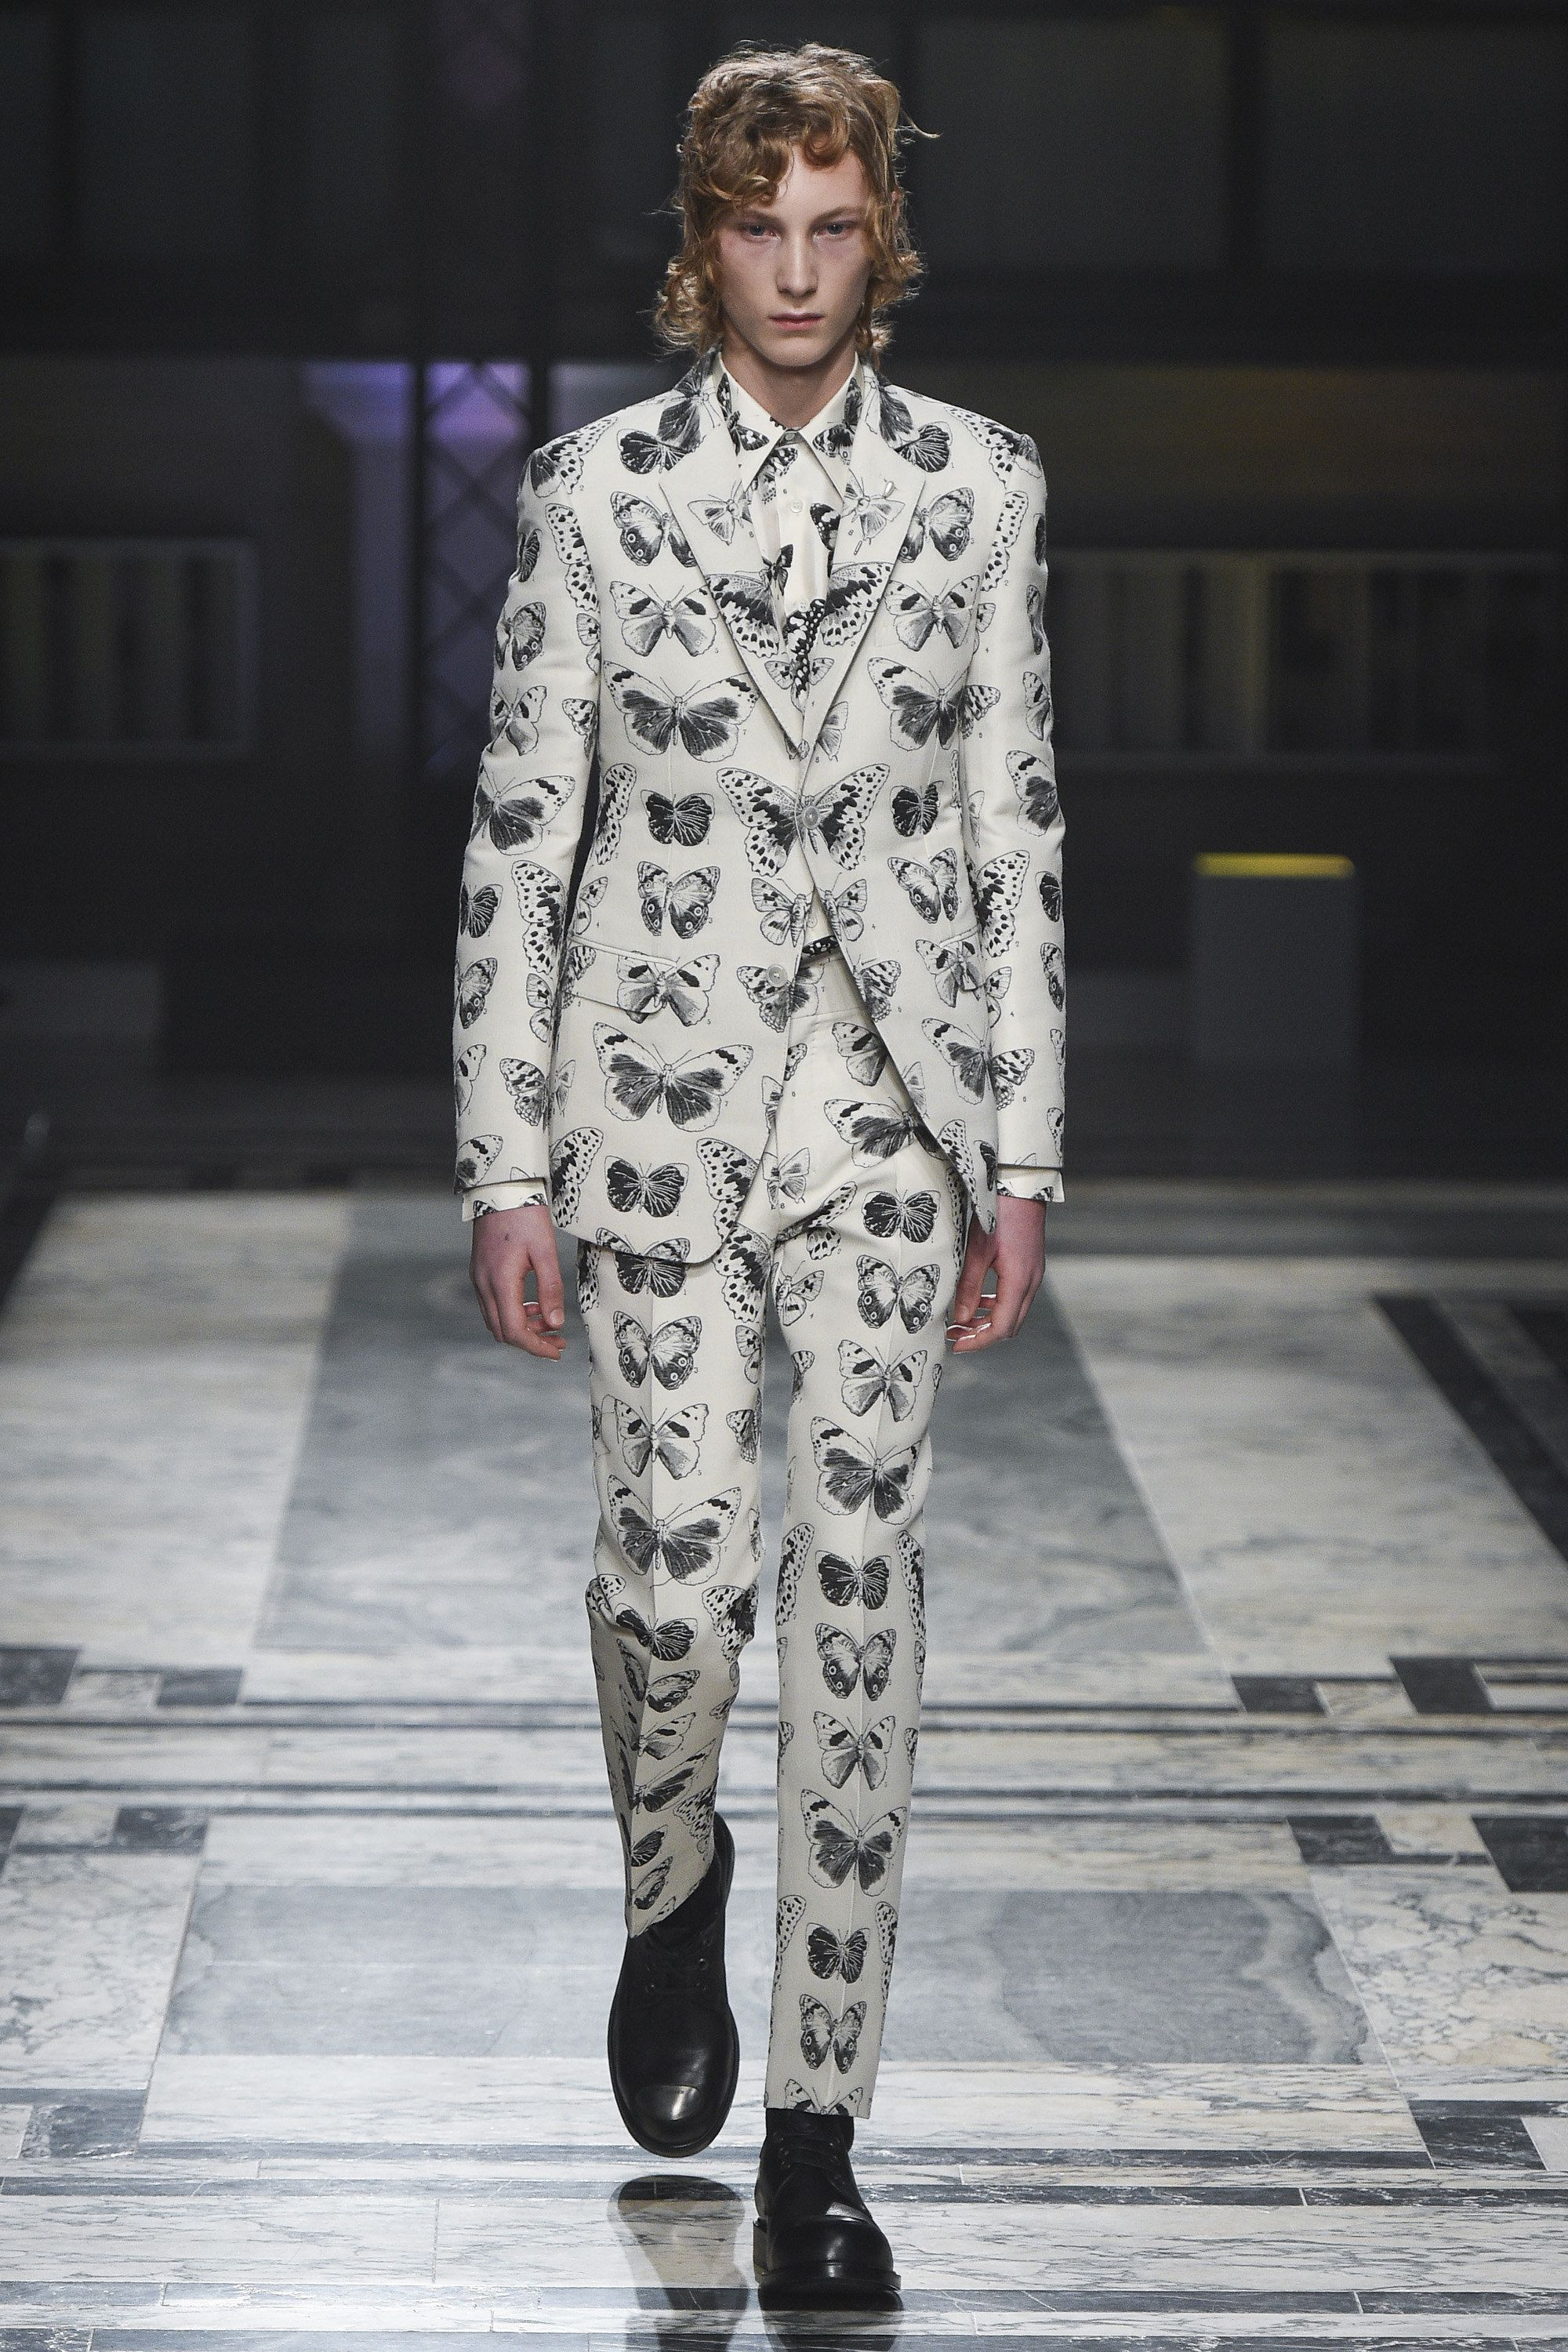 Alexander McQueen Fall 2016 Menswear Fashion Show | Fall ...